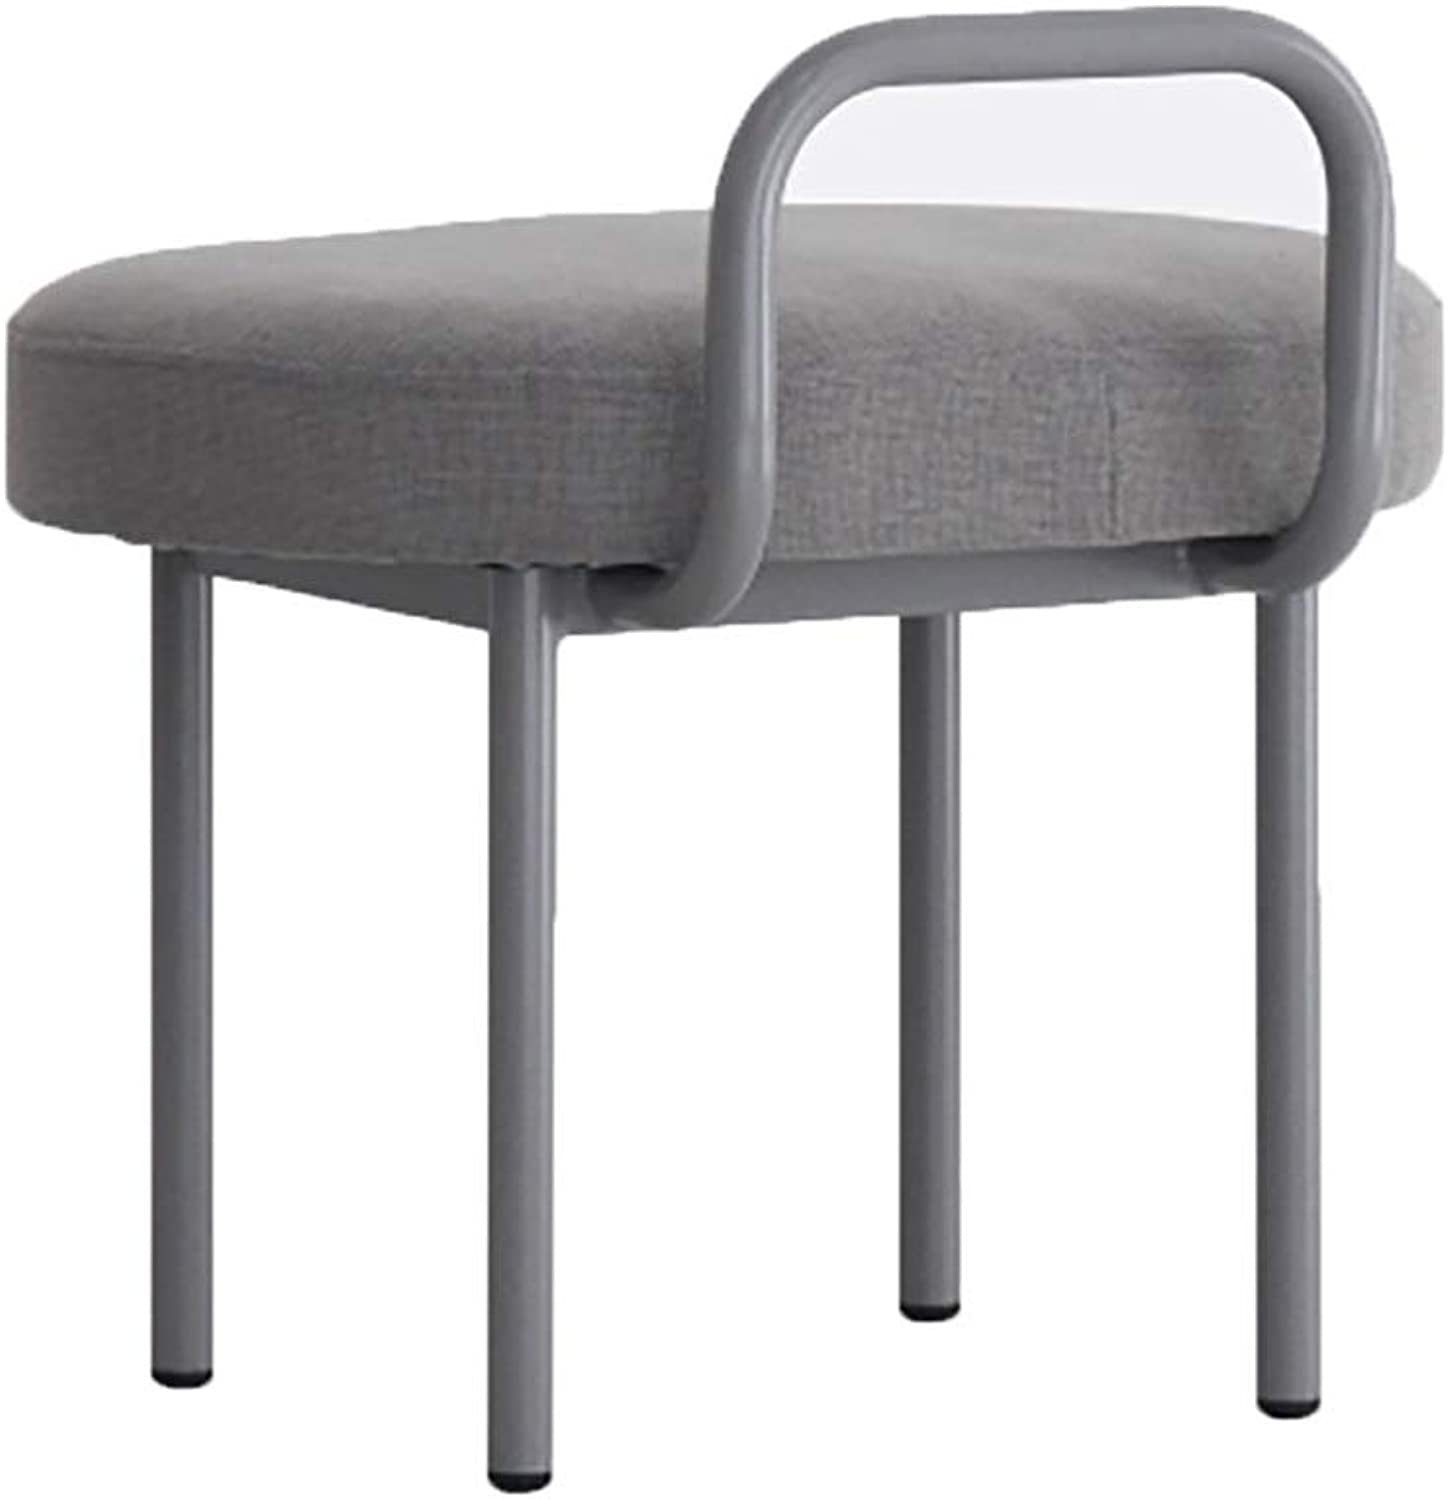 LXP Footstool Dressing Stool European Modern Minimalist Fashion Practical Creative Stool Bedroom Dressing Sofa Stool Low Stool for shoes Bench Suitable for Living Room bedrooms (color   C)